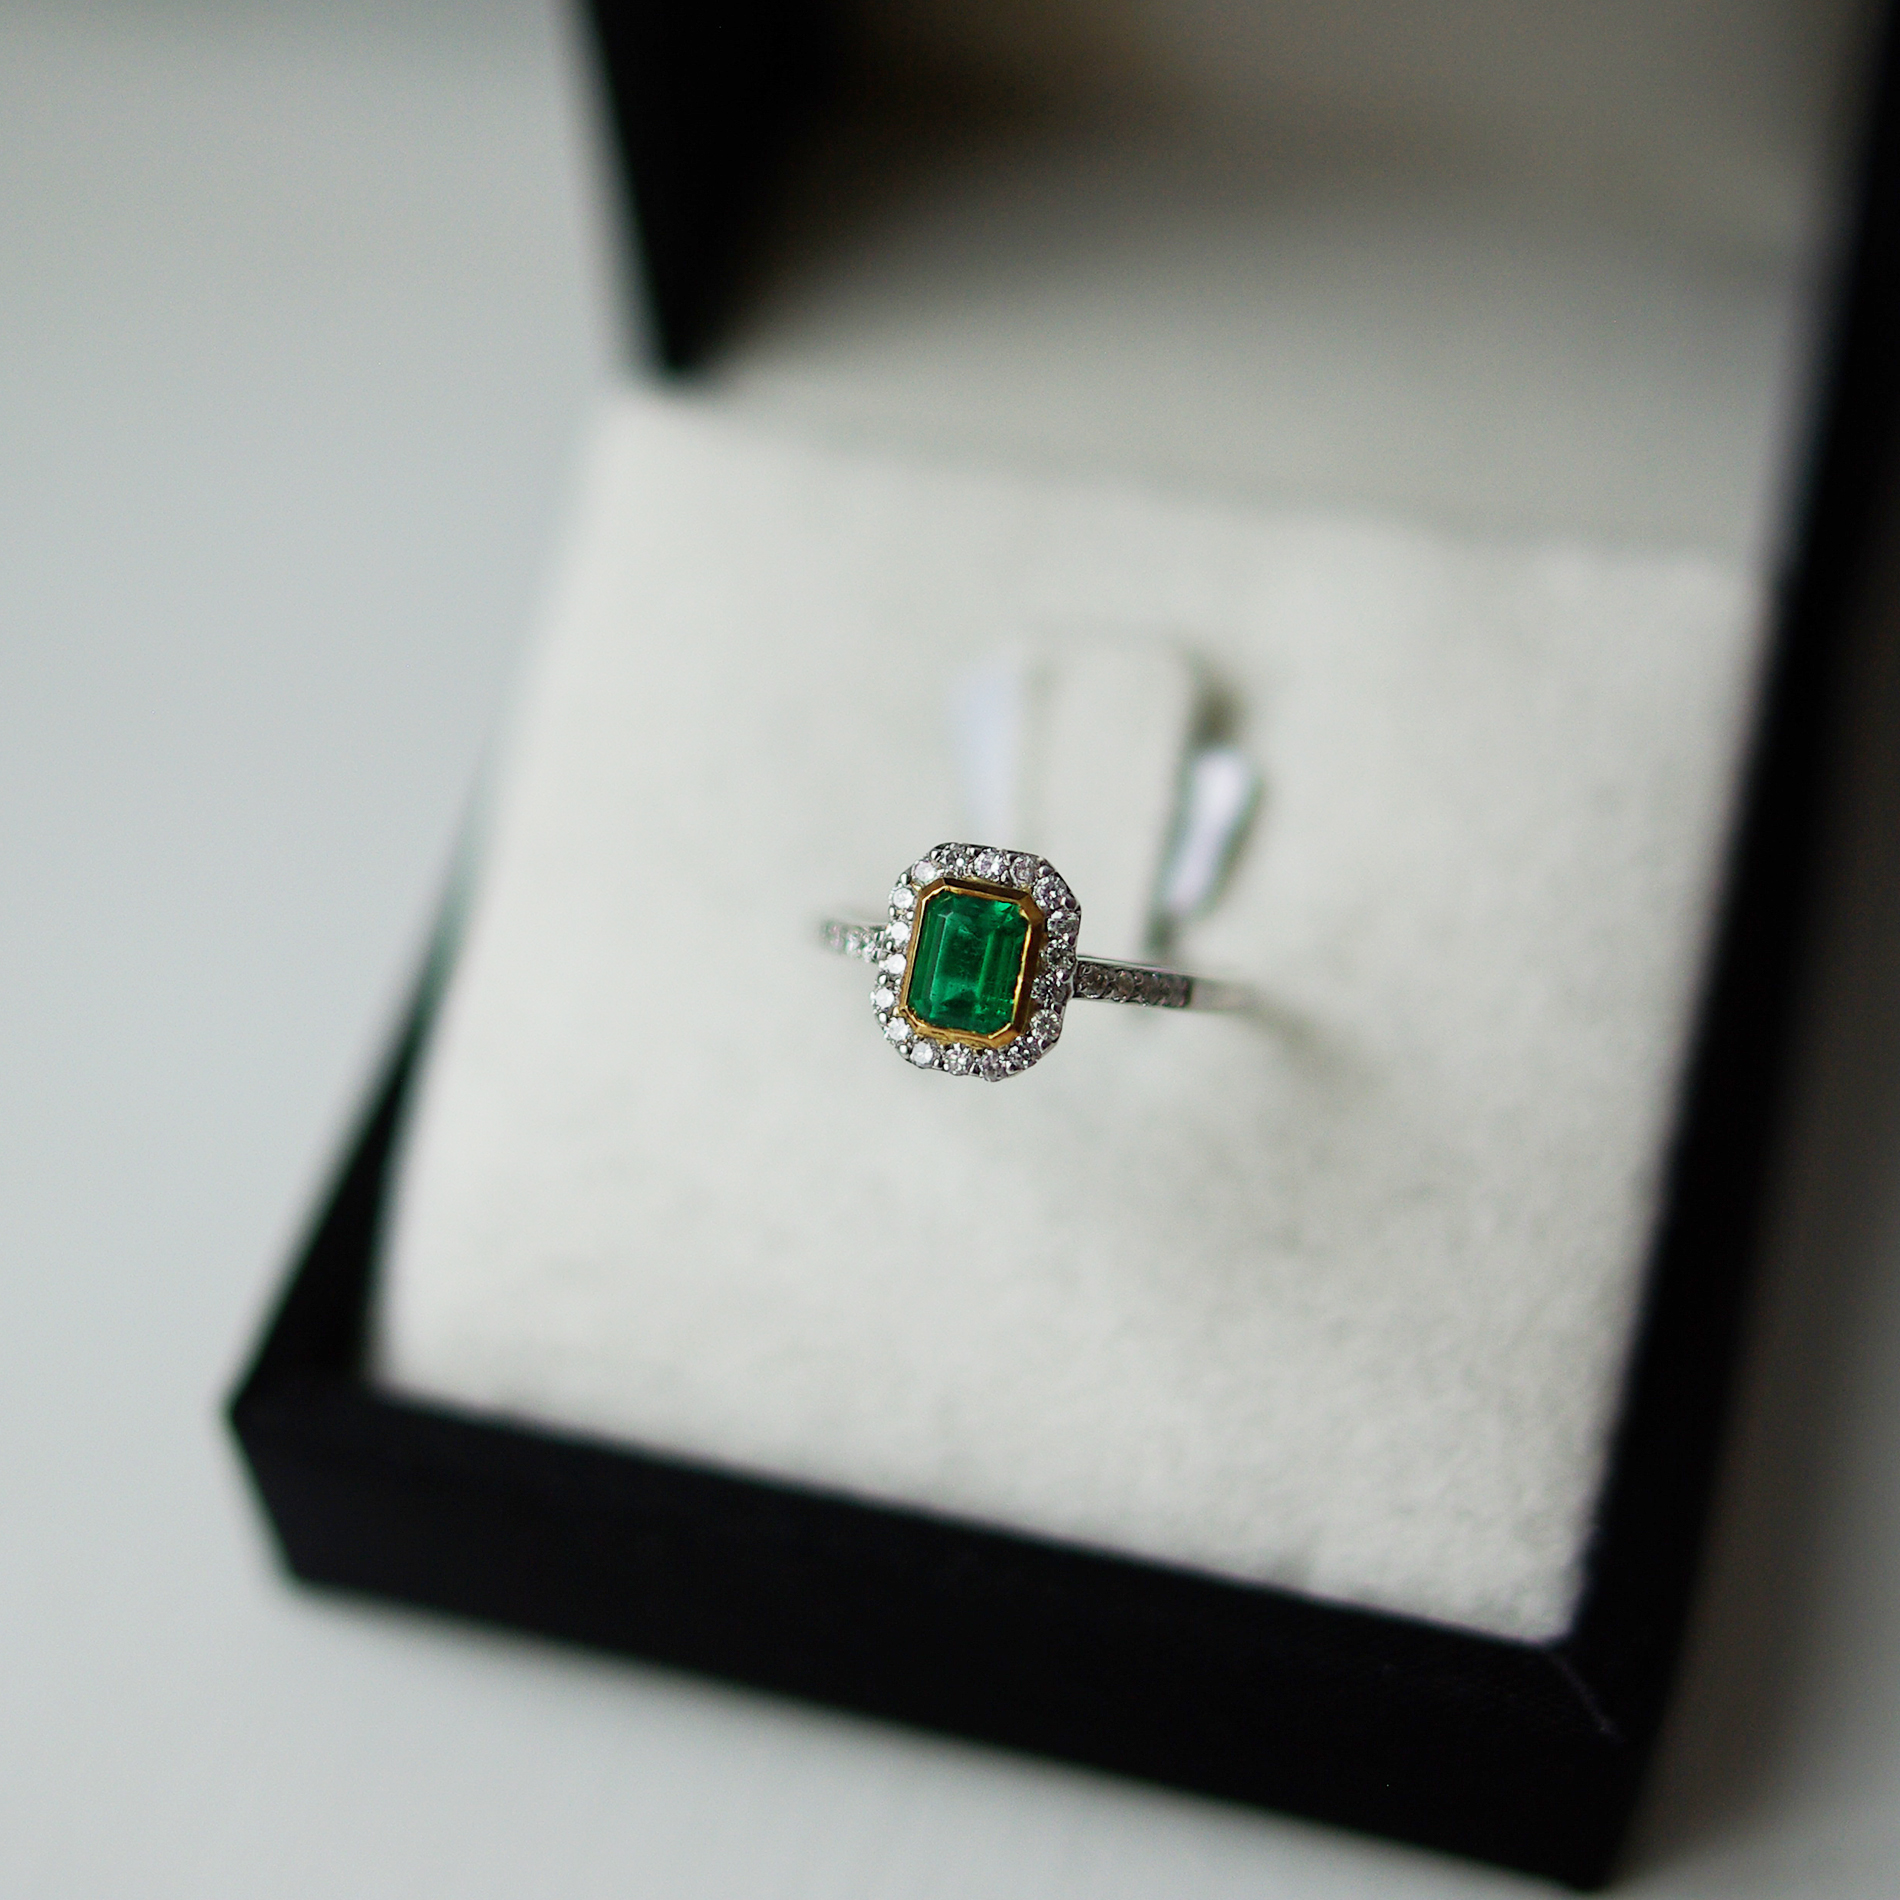 Emerald Cut Emerald Channel Pave Halo And Shoulders